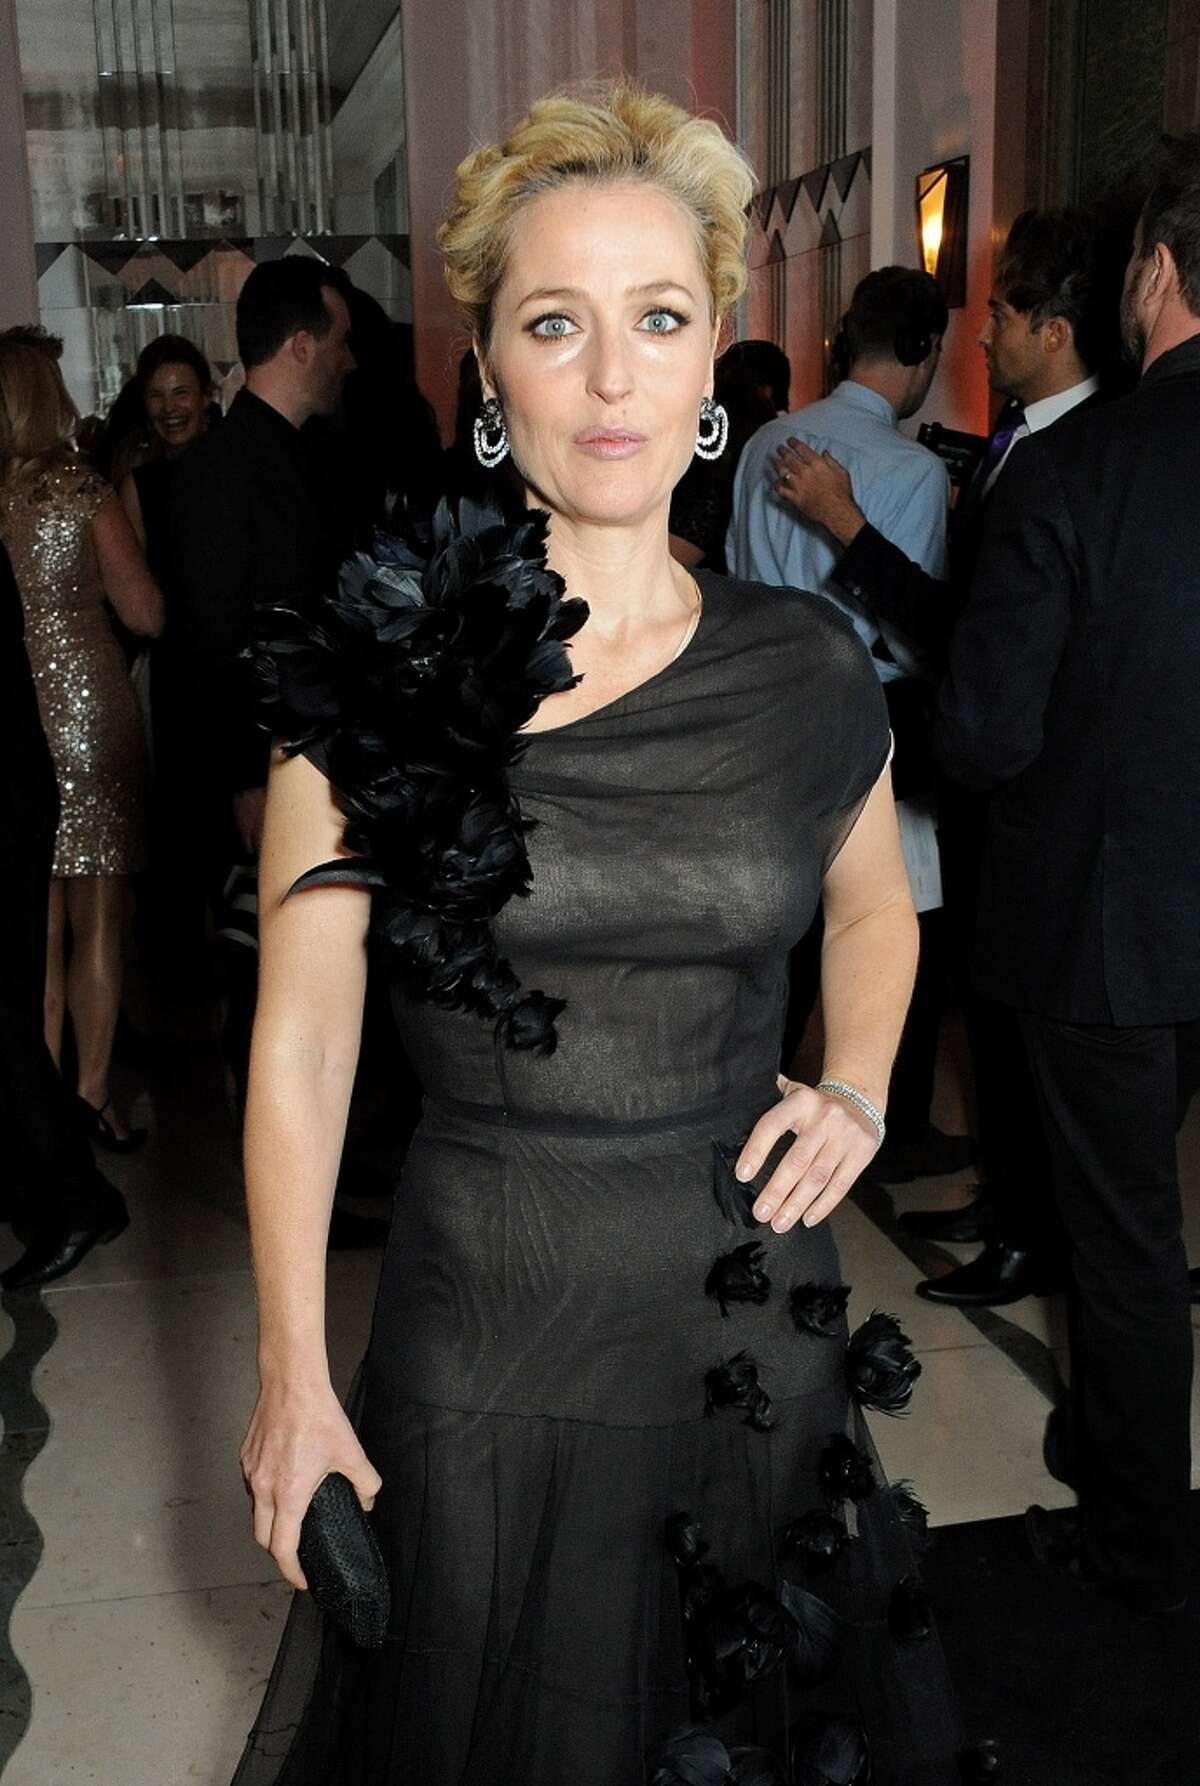 Gillian Anderson arrives at the Harper's Bazaar Women of the Year awards at Claridge's Hotel on November 5, 2013 in London, England. (Photo by David M. Benett/Getty Images)